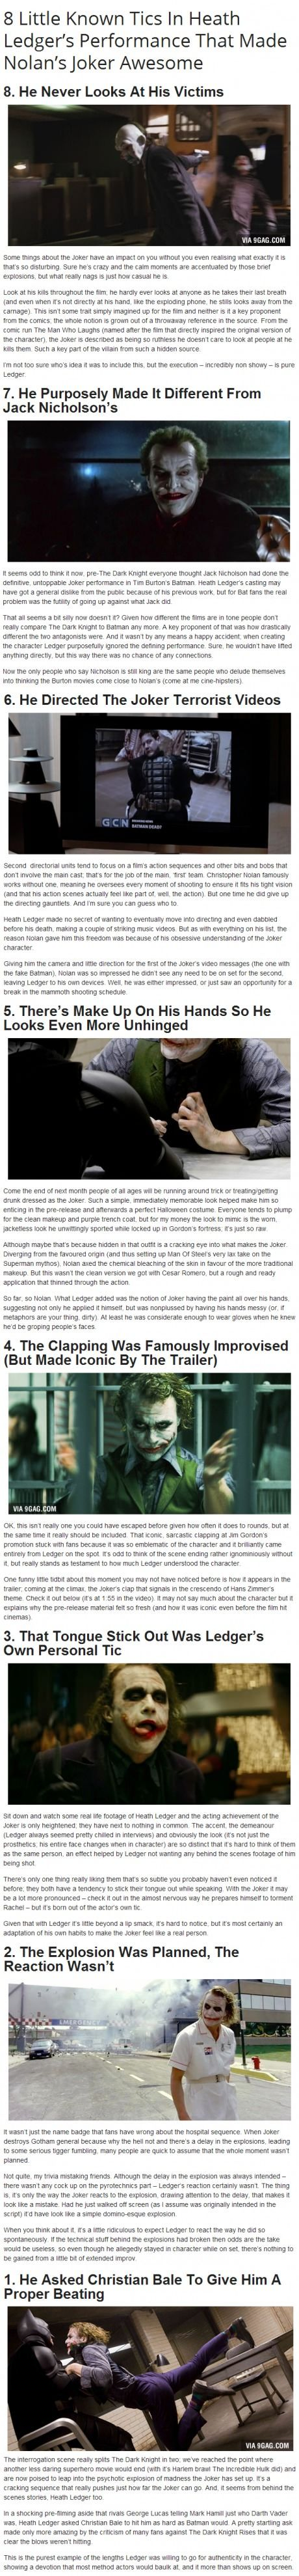 We need more actors like Heath Ledger.